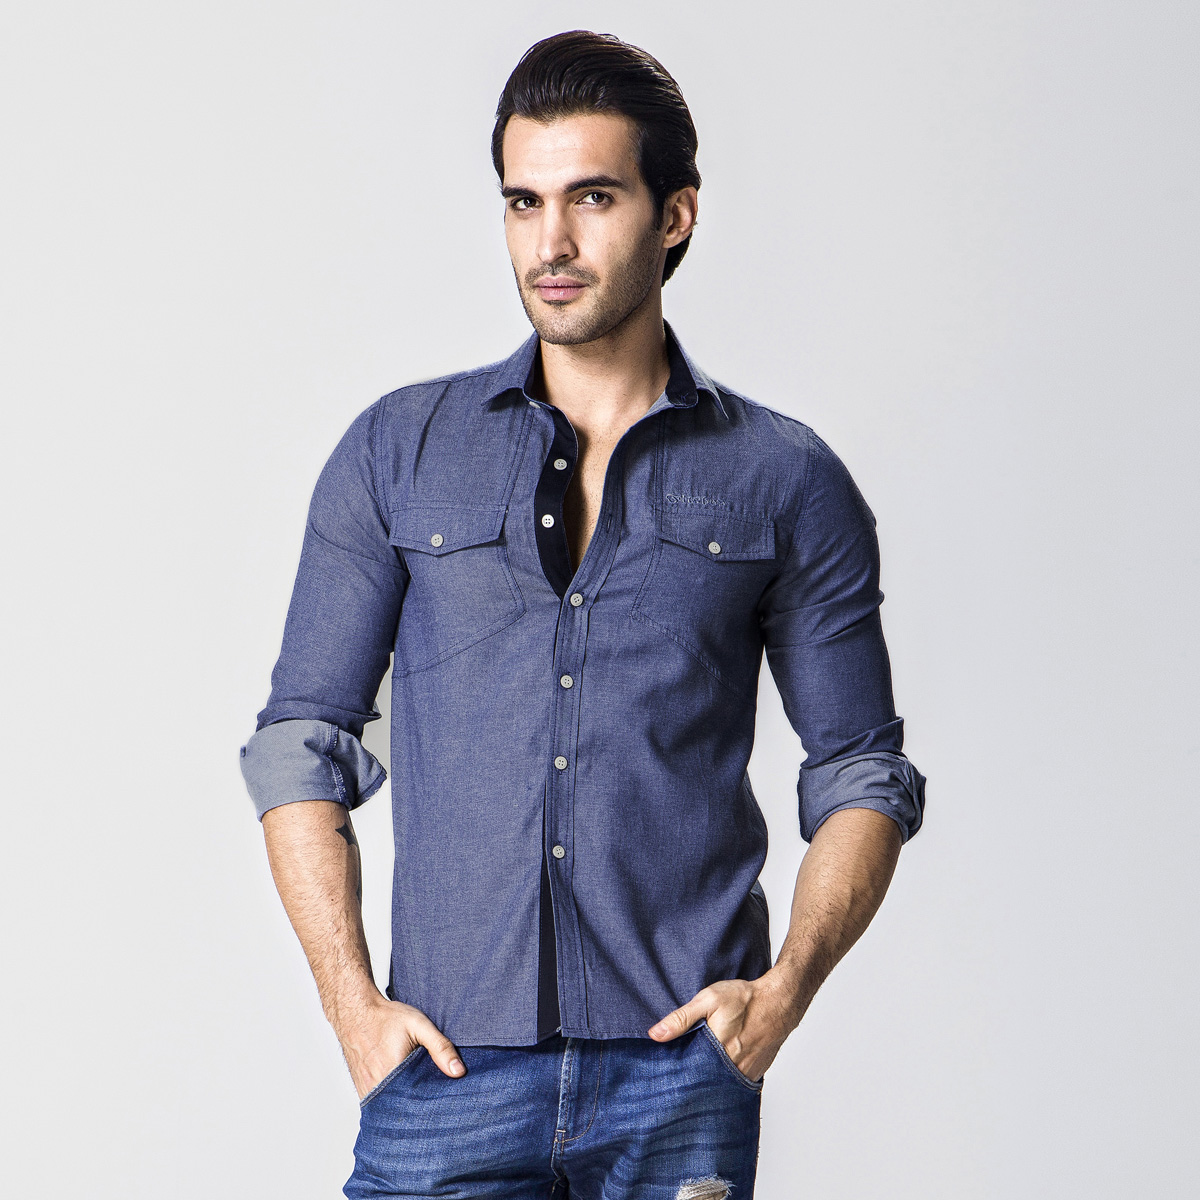 2017 Fashion high quality slim male casual all-match solid denim shirts blue color block long sleeve men shirt jeans camisa